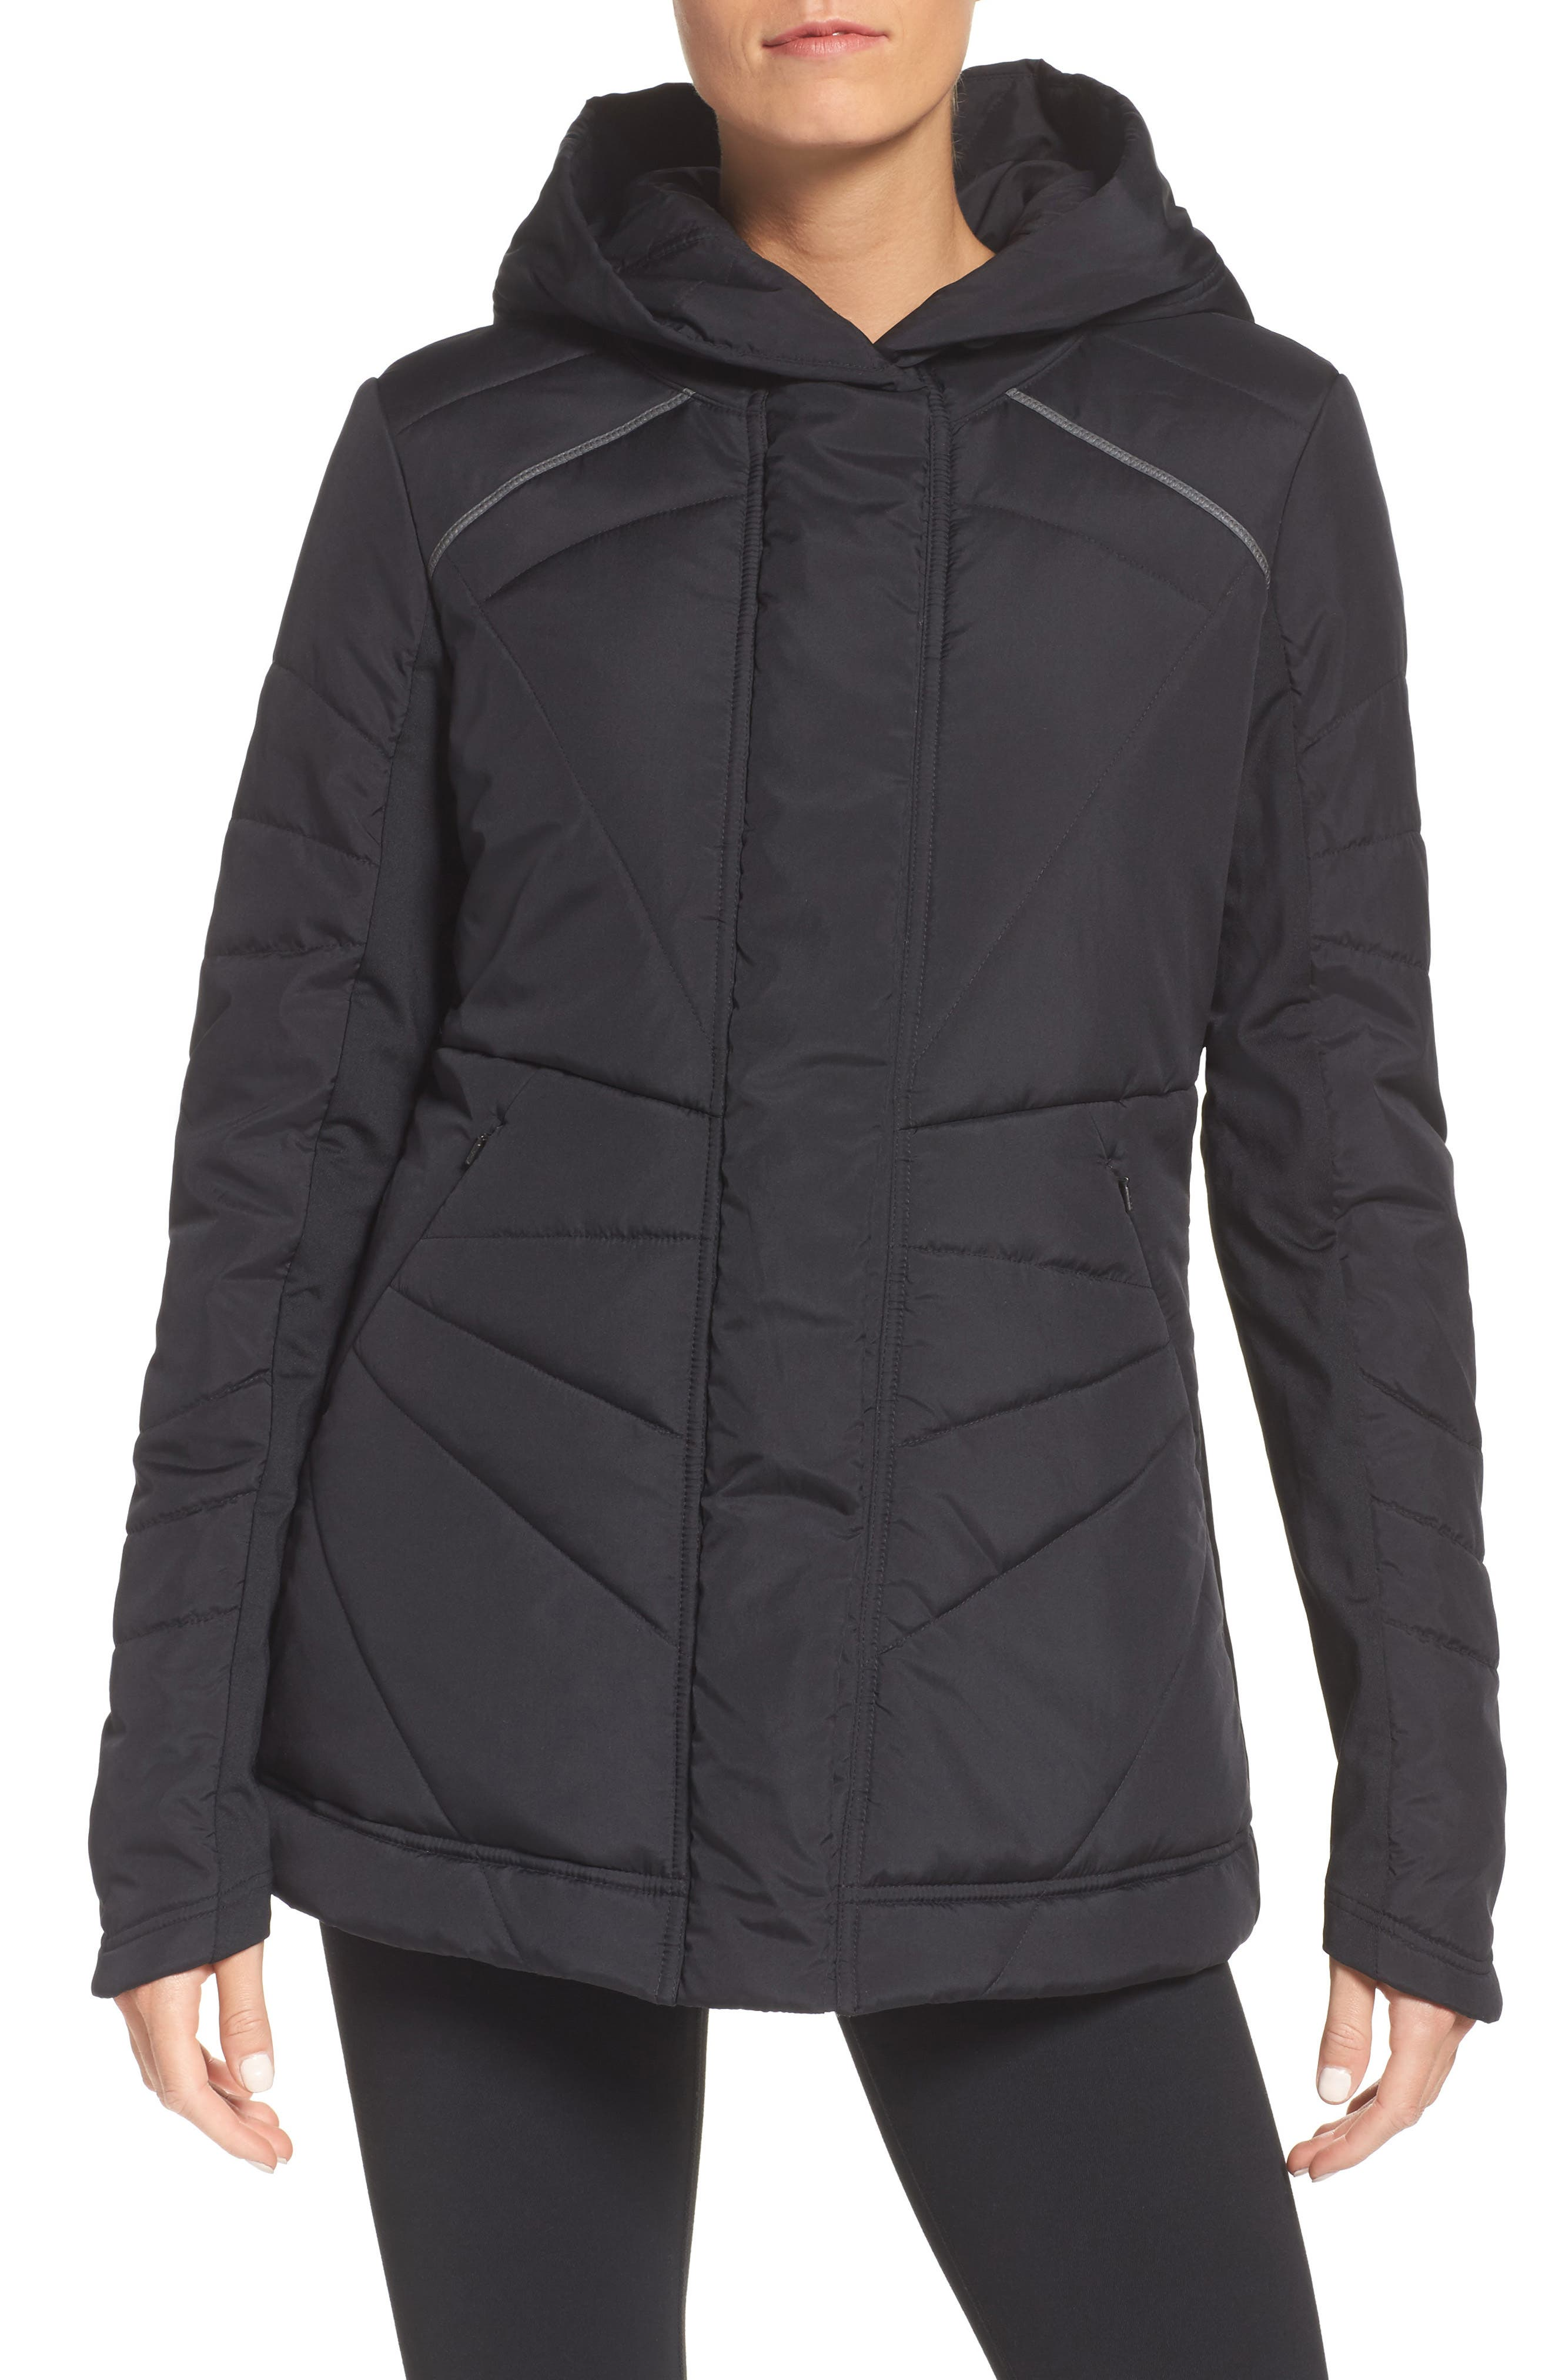 Beyond Hooded Puffer Jacket,                             Main thumbnail 1, color,                             001